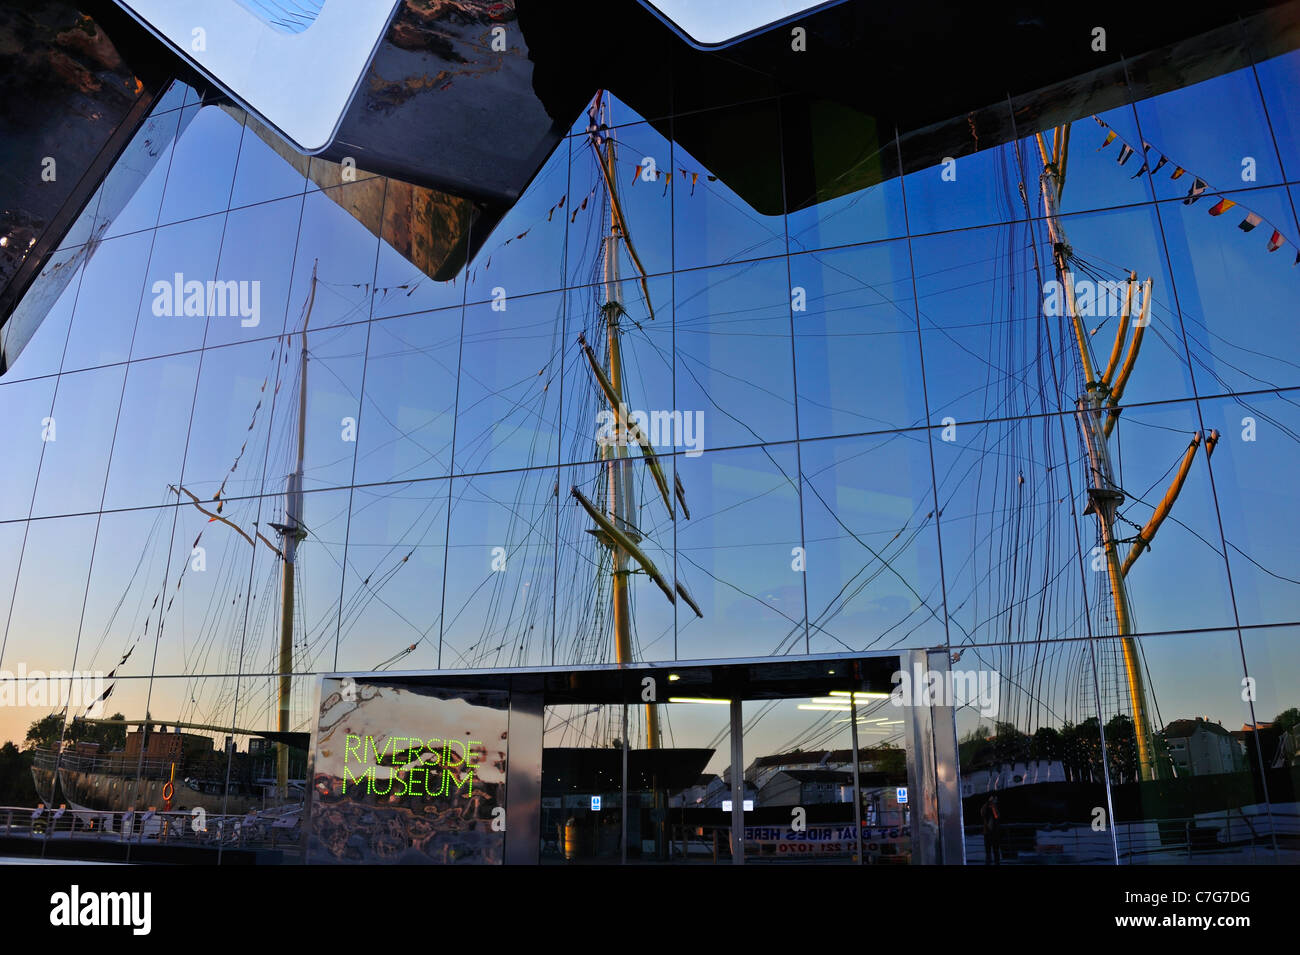 The facade of the Riverside Museum in Glasgow with the three-masted barque, the Glenlee reflected in the glass - Stock Image